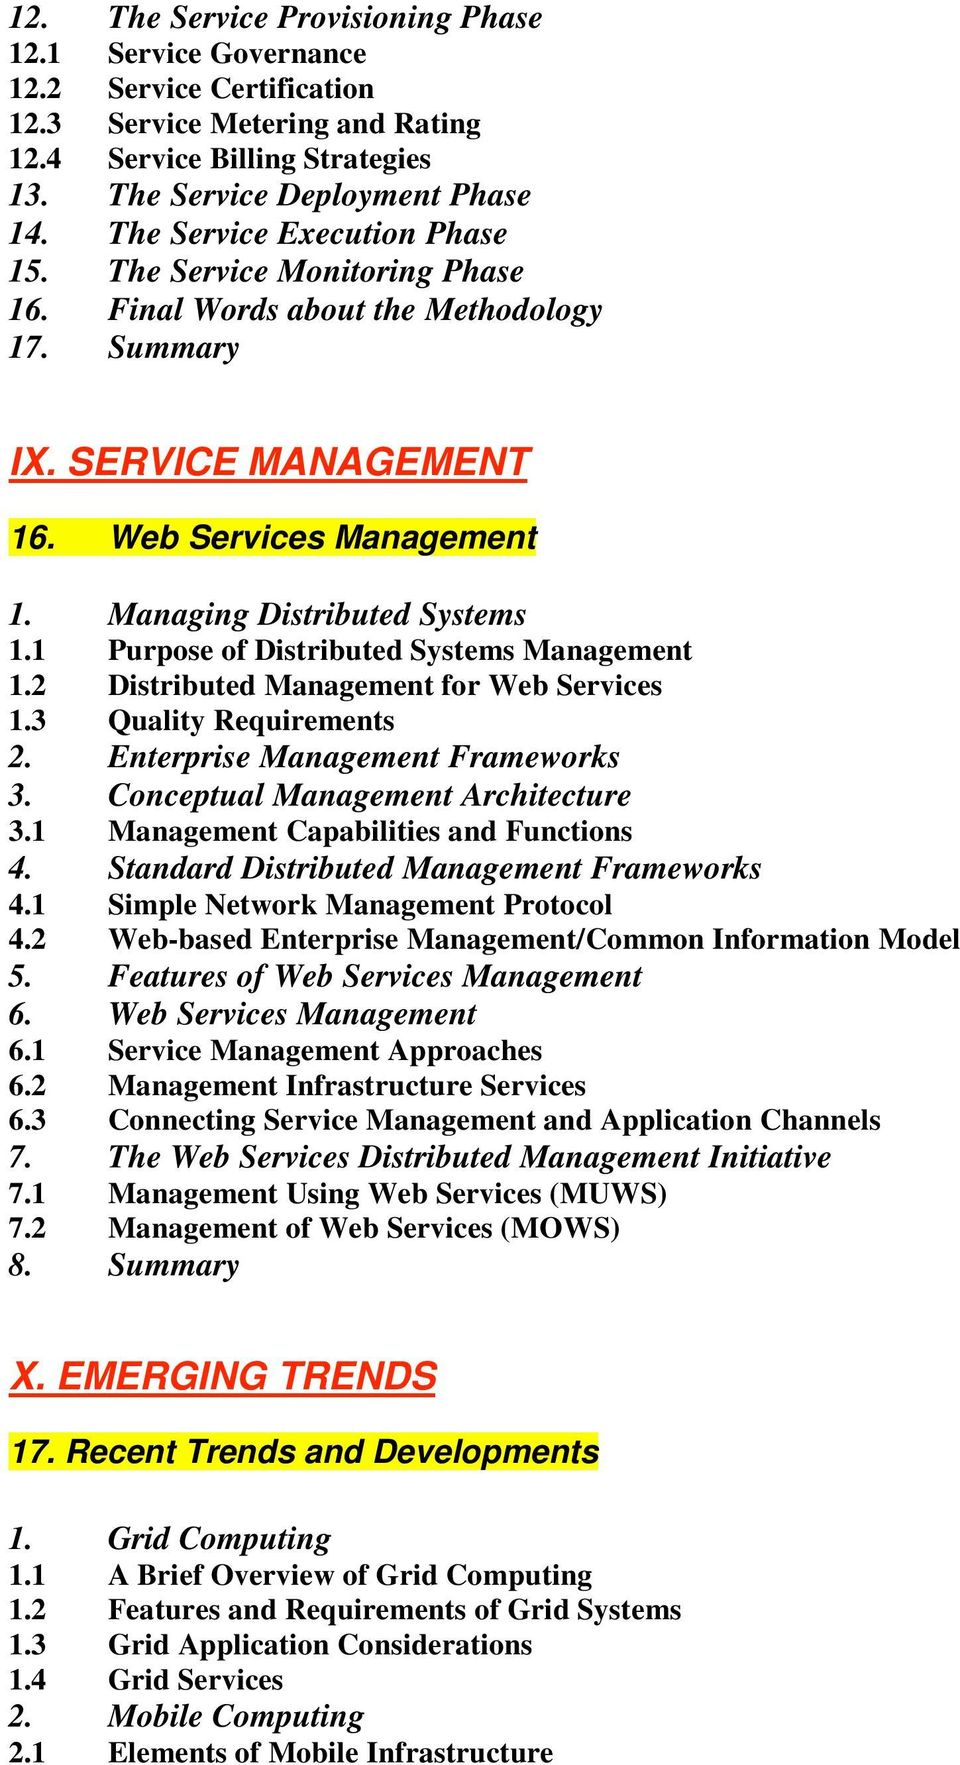 1 Purpose of Distributed Systems Management 1.2 Distributed Management for Web Services 1.3 Quality Requirements 2. Enterprise Management Frameworks 3. Conceptual Management Architecture 3.